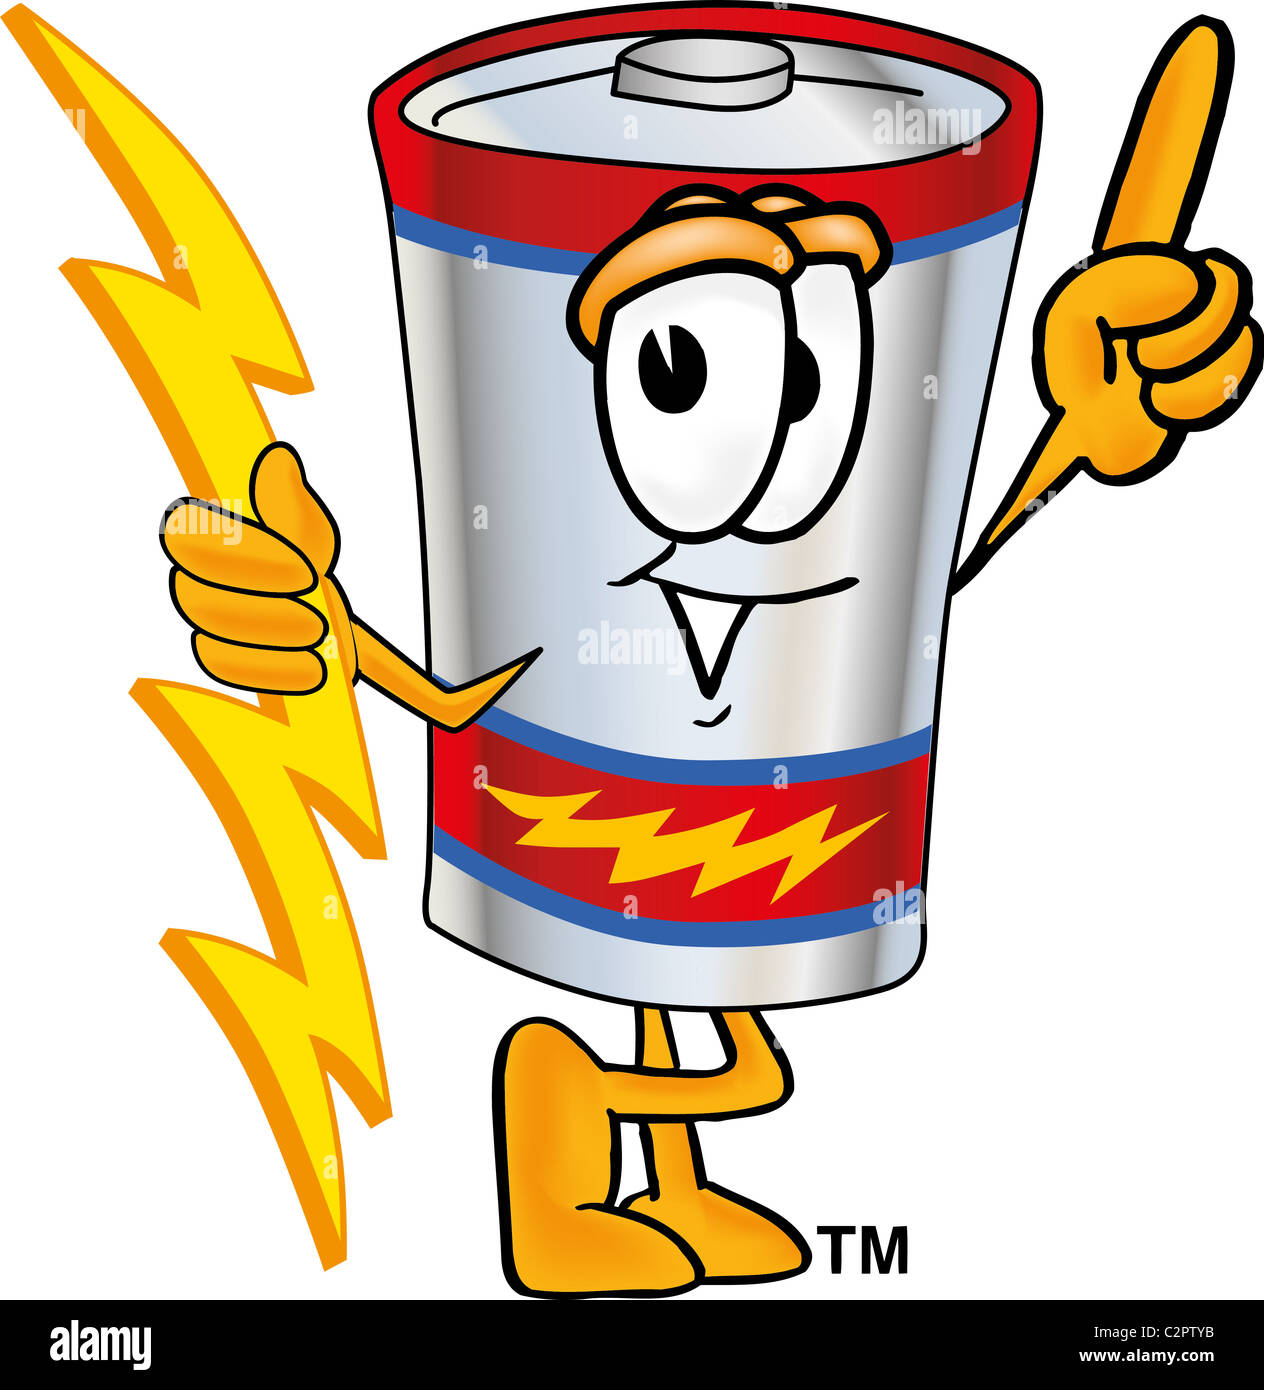 Battery character stock photos battery character stock images alamy cartoon battery mascot holding a lightning bolt stock image buycottarizona Image collections